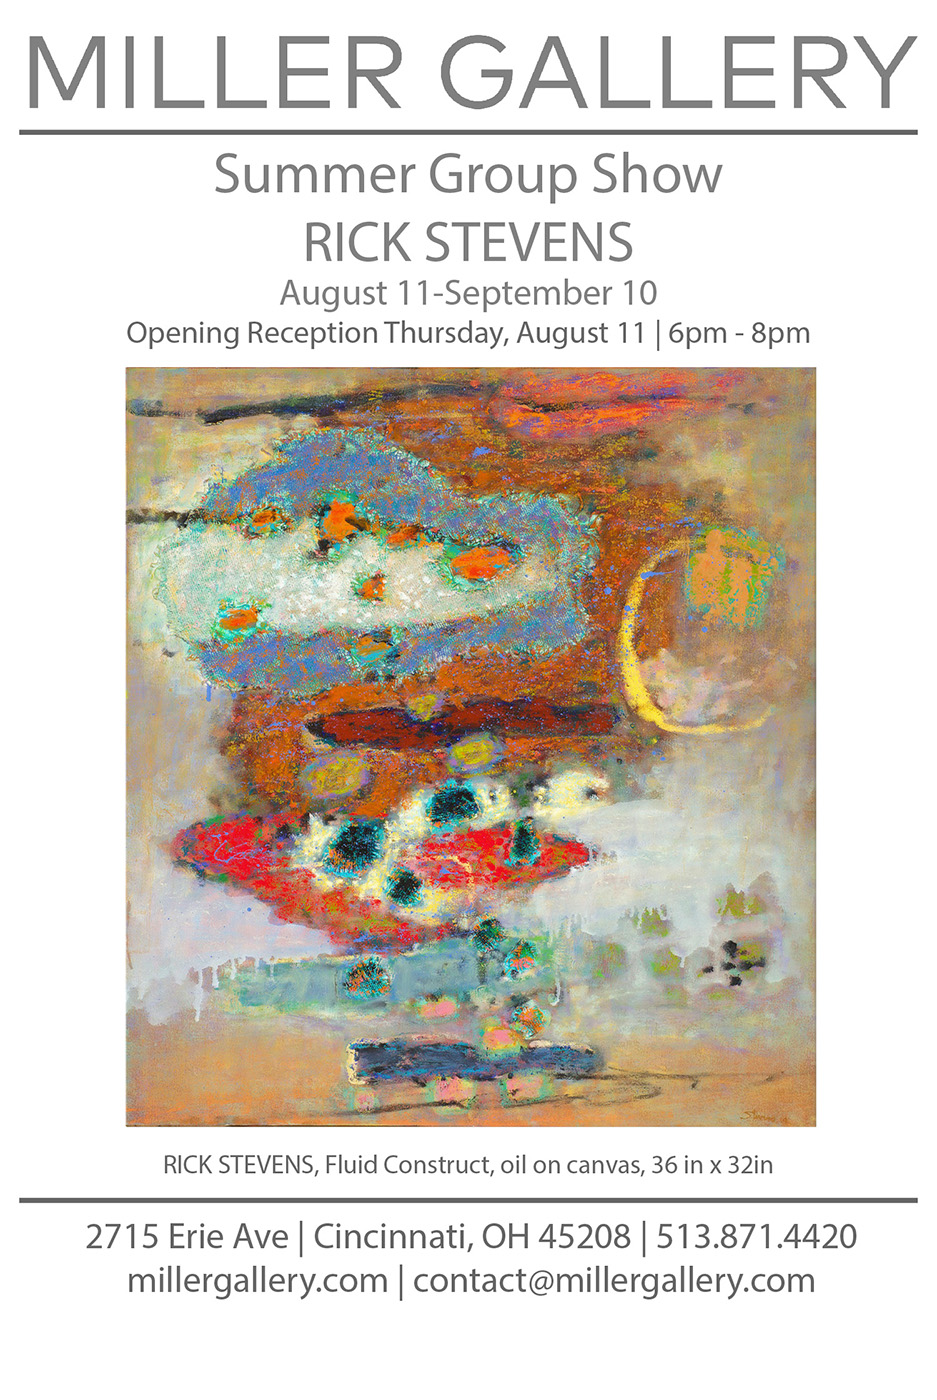 Rick's work will be included in Miller Gallery's upcoming Summer Group Show, opening August 11th.